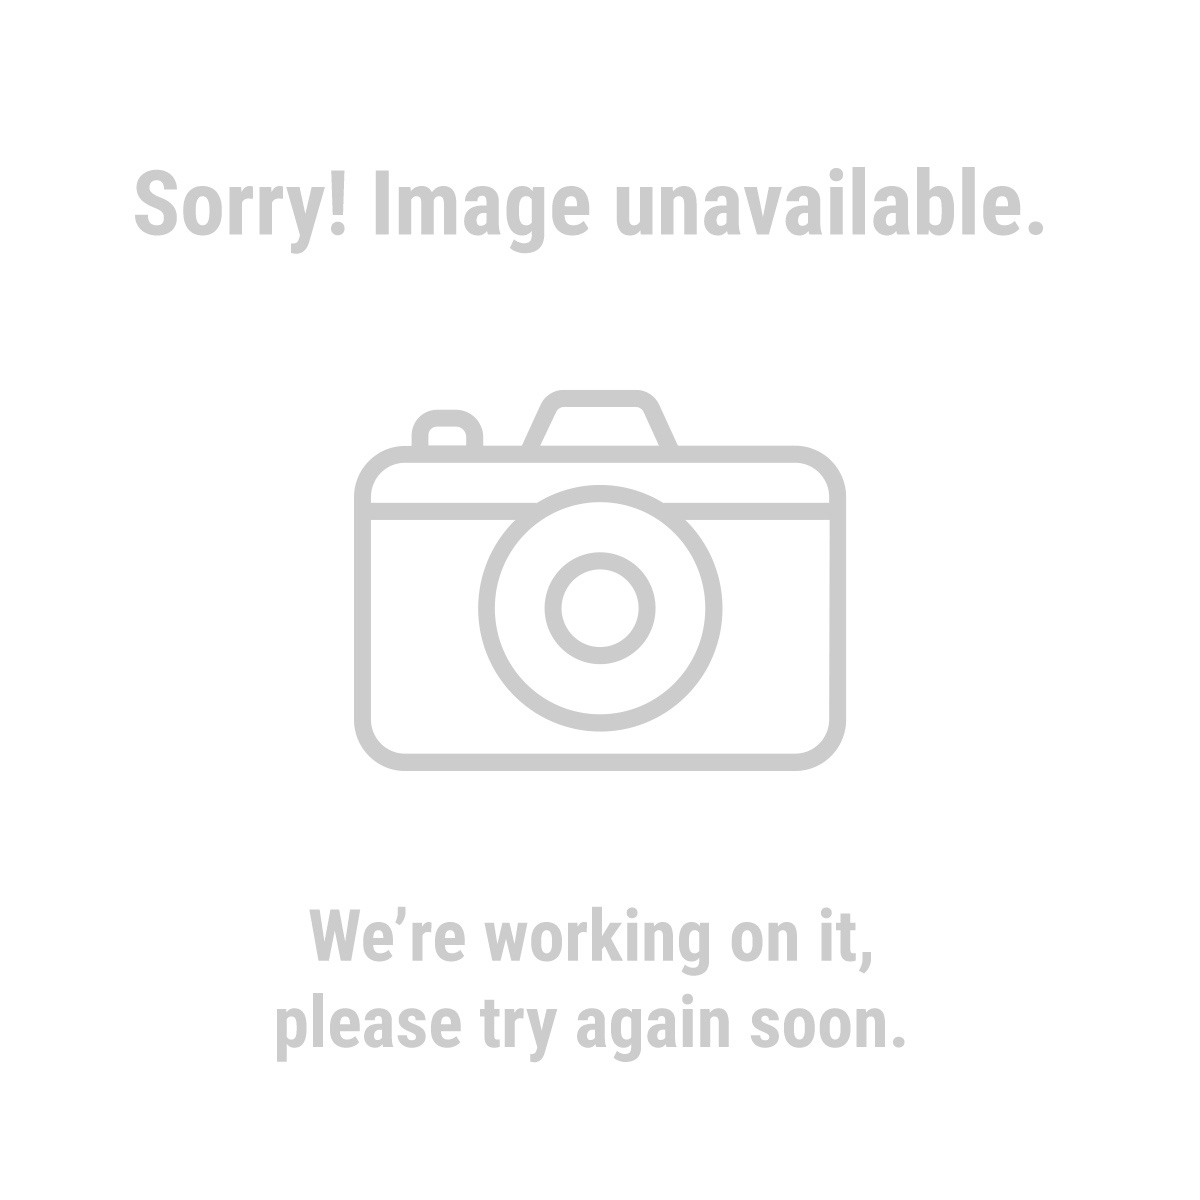 Storehouse 67610 100 Piece Aluminum Blind Rivet Assortment